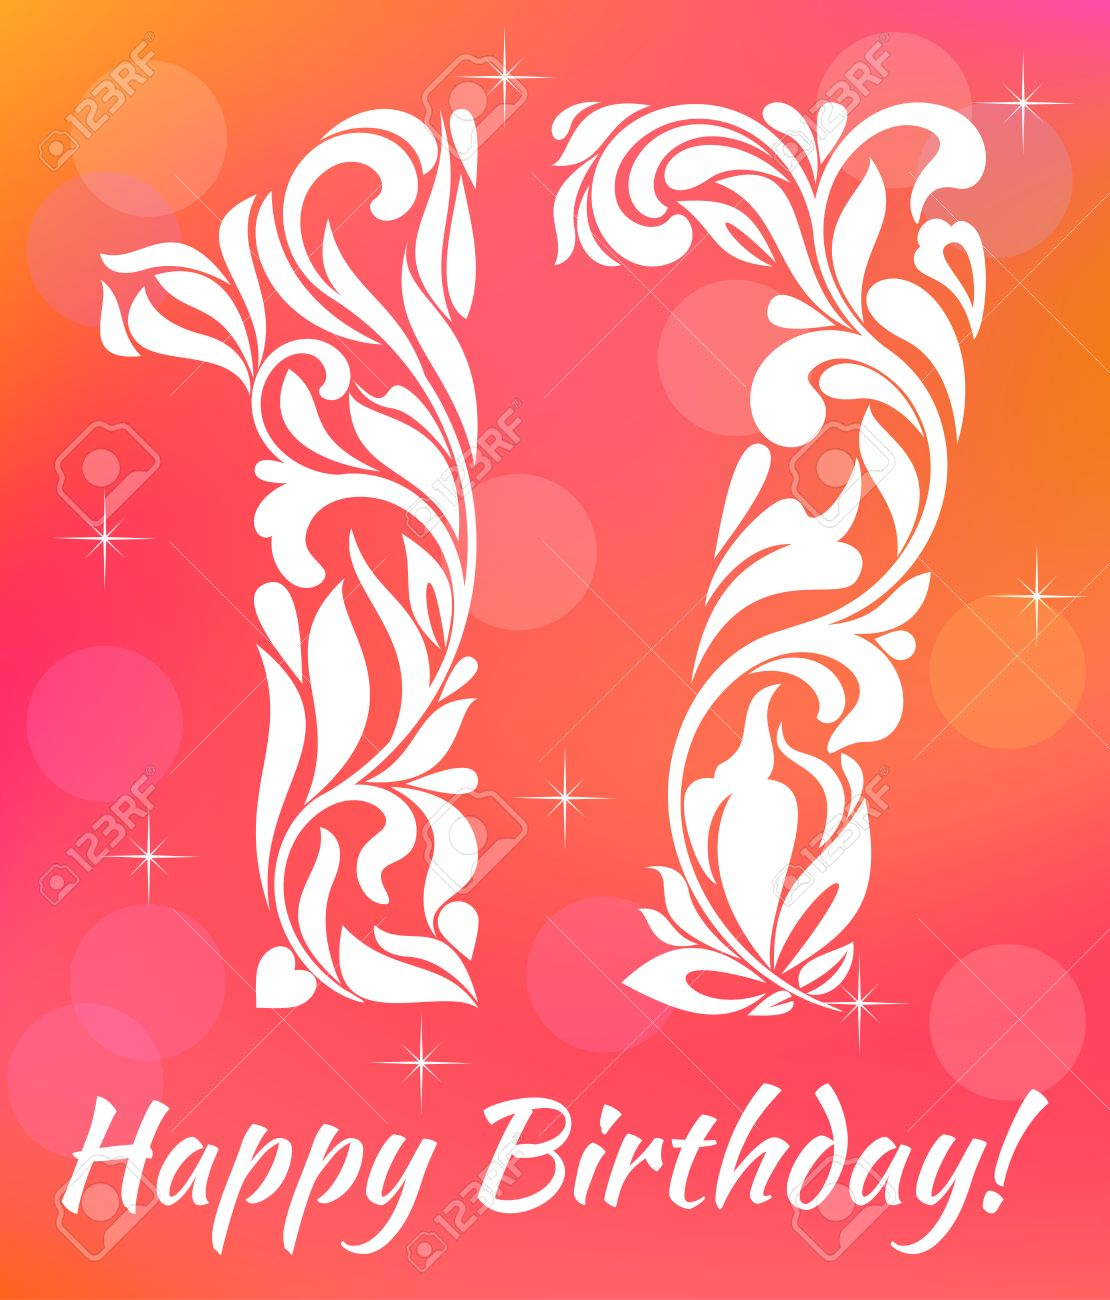 bright greeting card invitation template celebrating 17 years birthday decorative font with swirls and